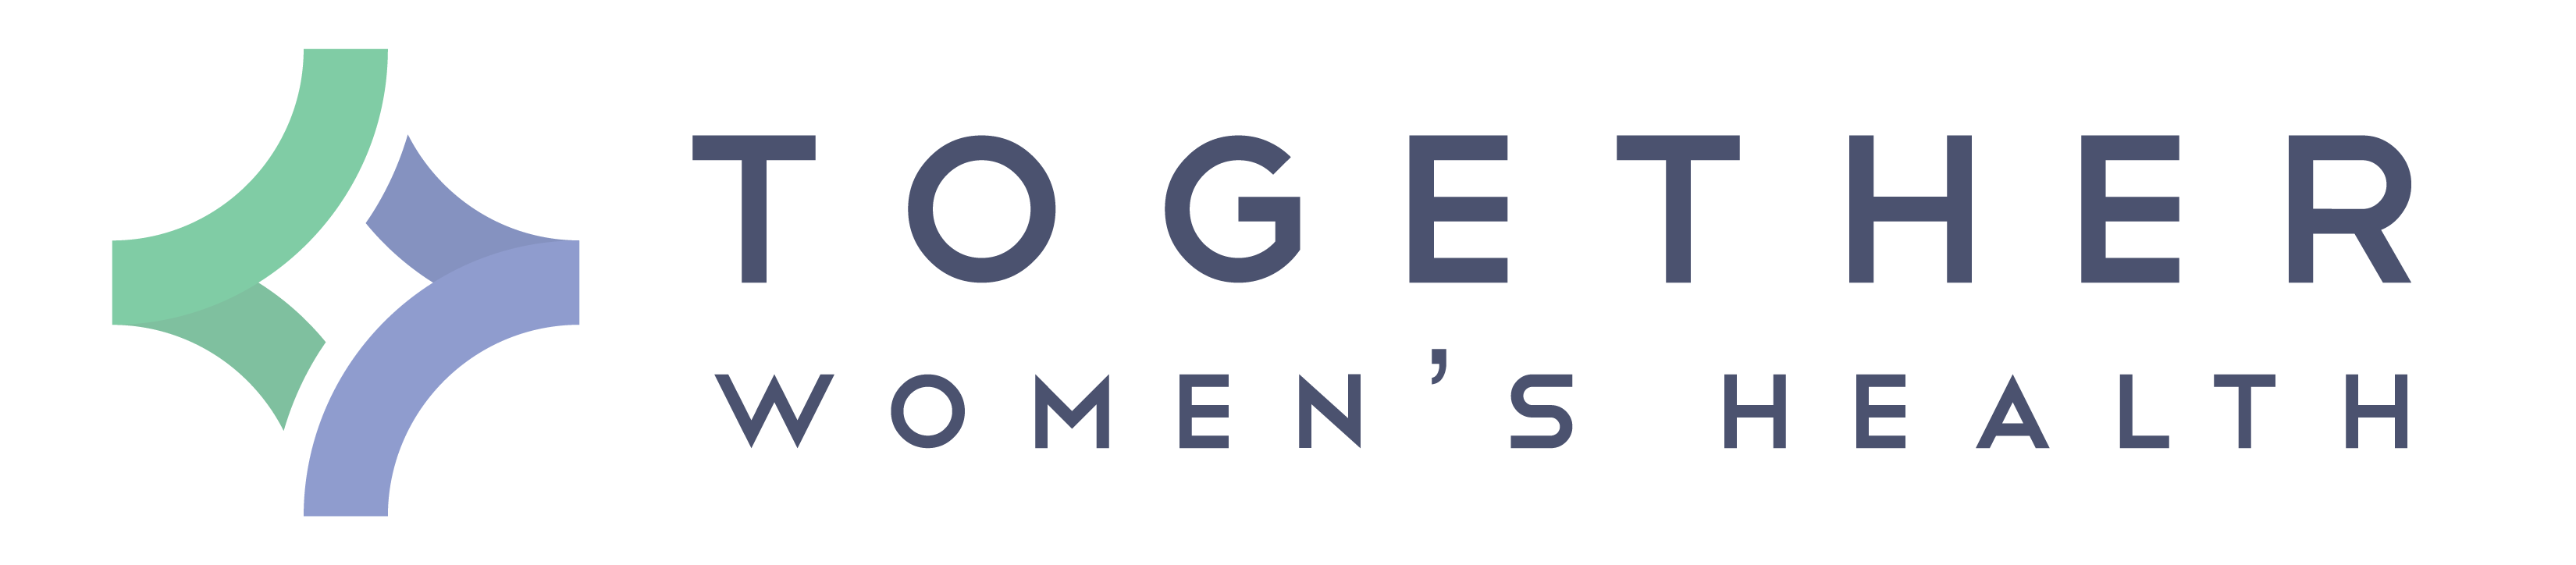 Together Women's Health